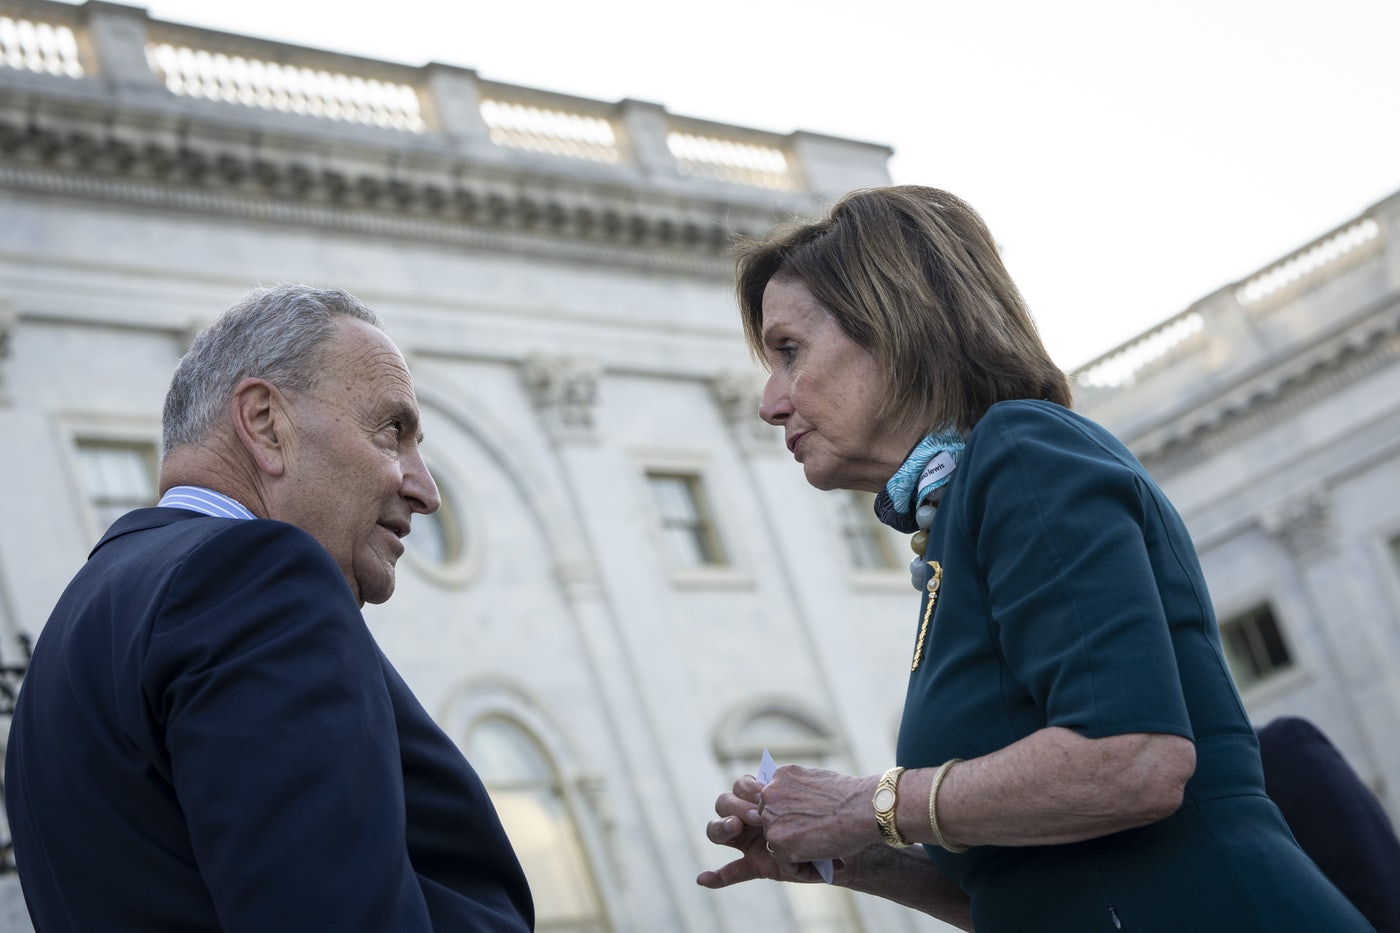 Chuck Schumer and Nancy Pelosi have a heated discussion on the steps of the U.S. Capitol.